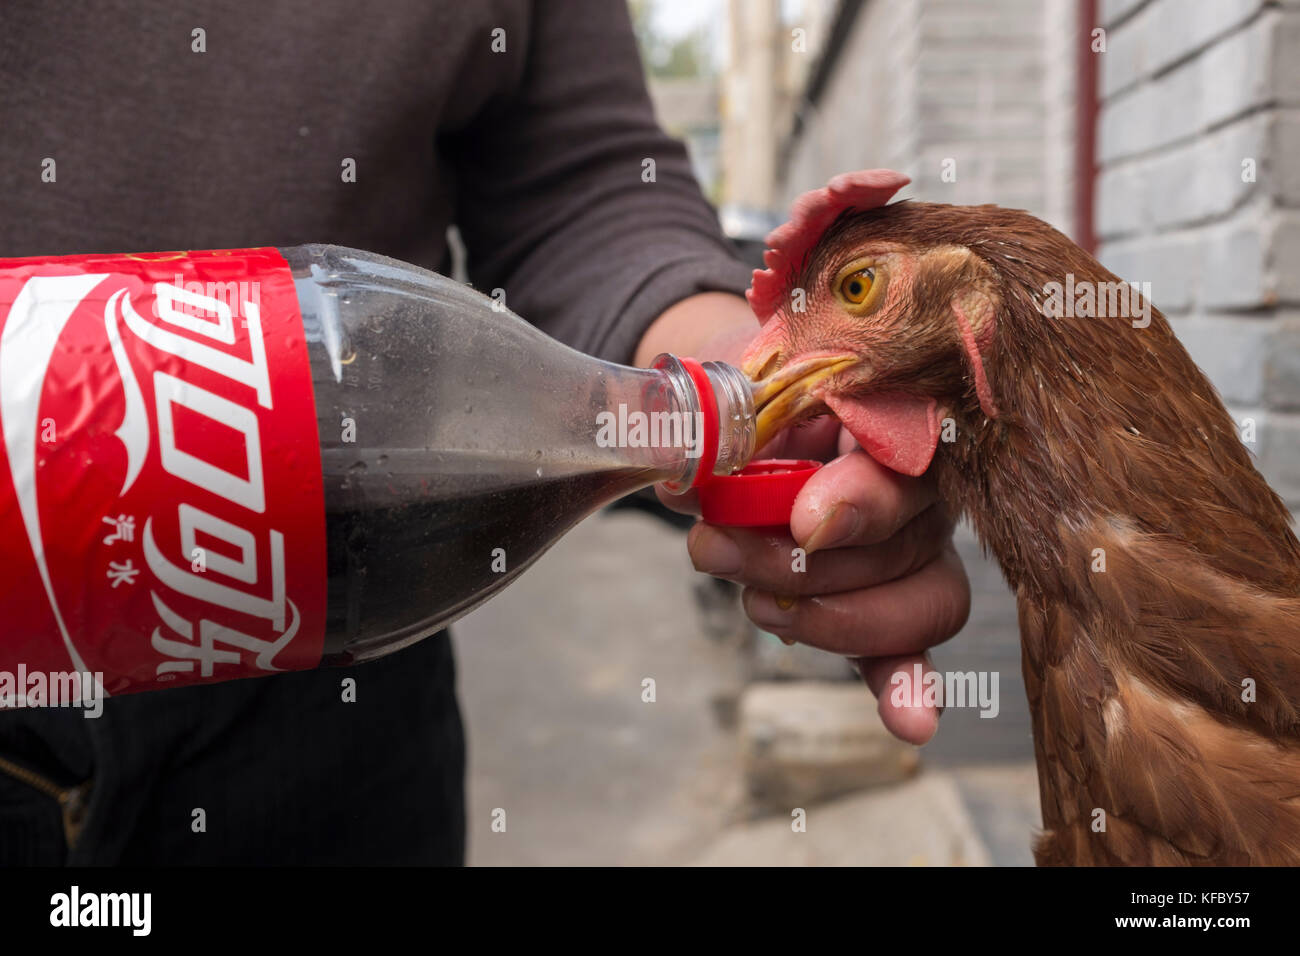 Beijing, China. 27 October, 2017. Mr. Guan Jialiang, a 60 year old retired worker, feeds his pet hen named Dahuang - Stock Image